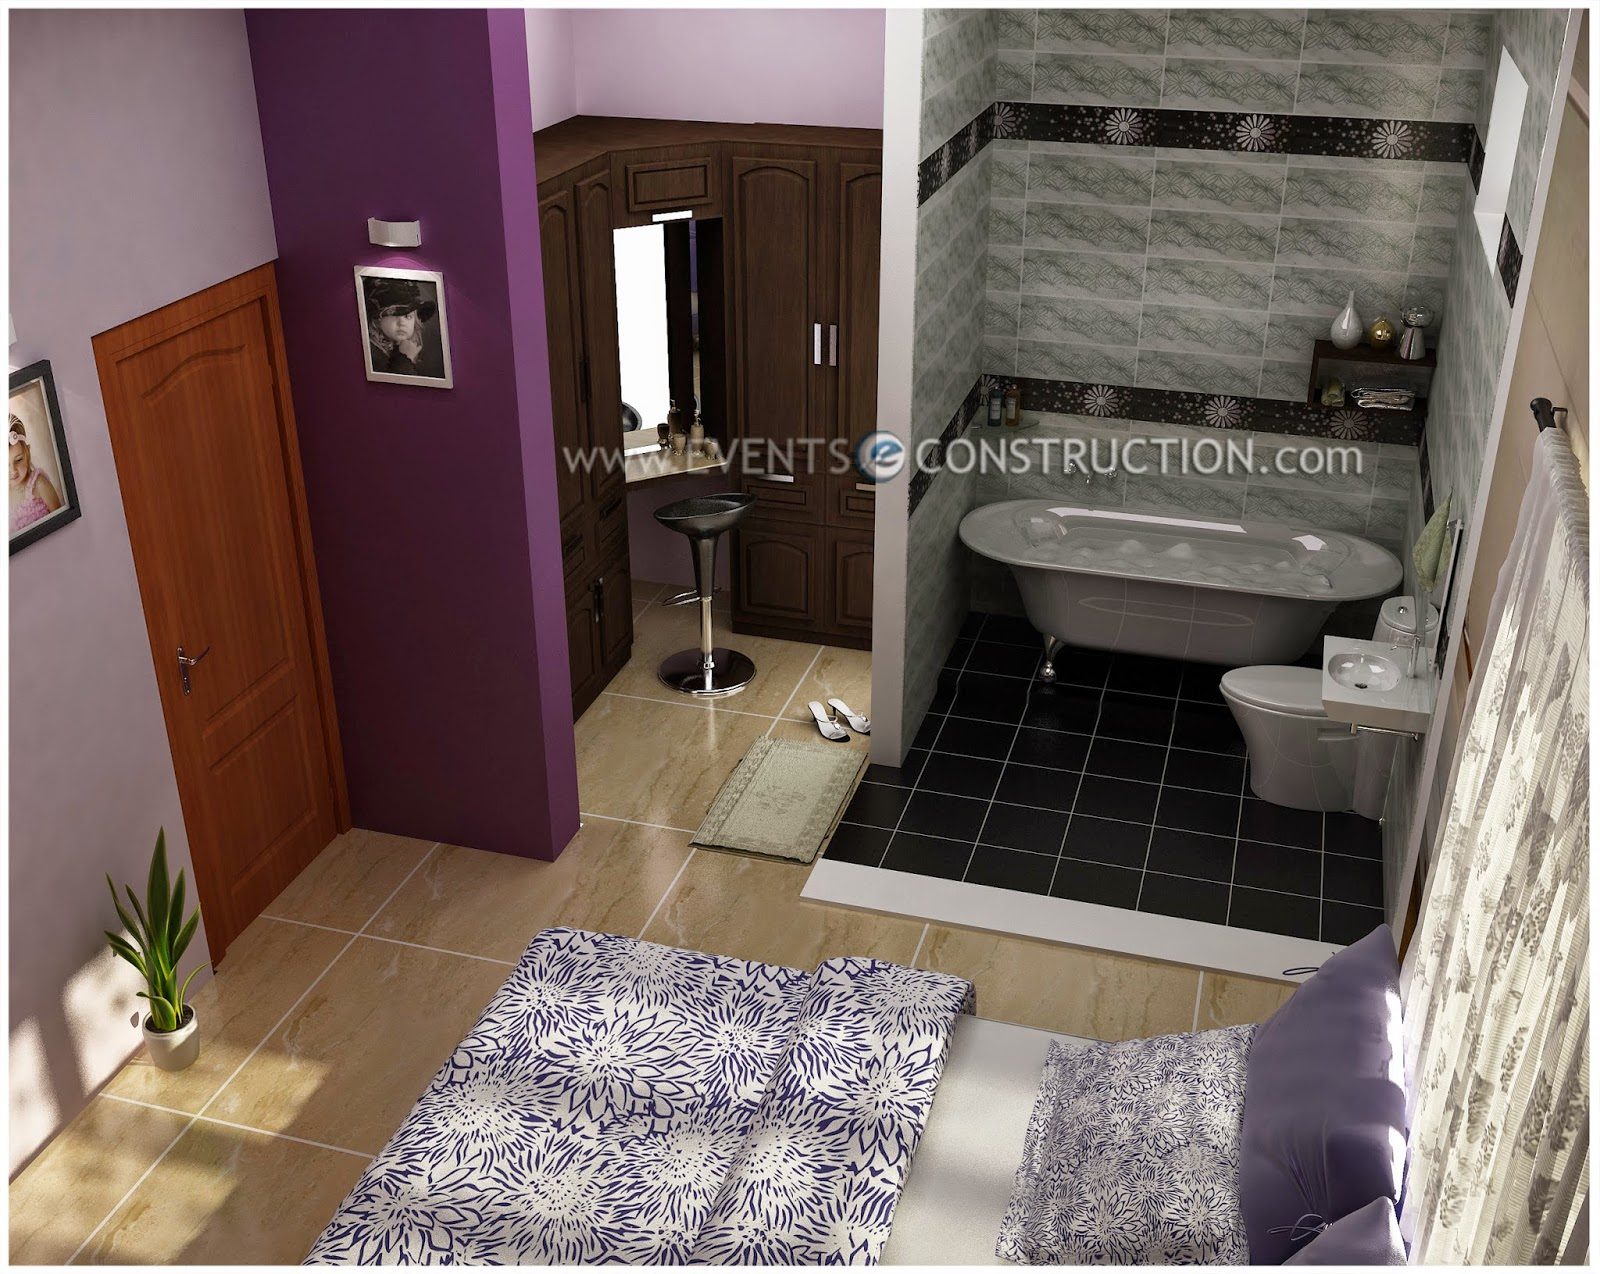 Evens construction pvt ltd dressing area bedroom and for Bathroom designs with dressing area